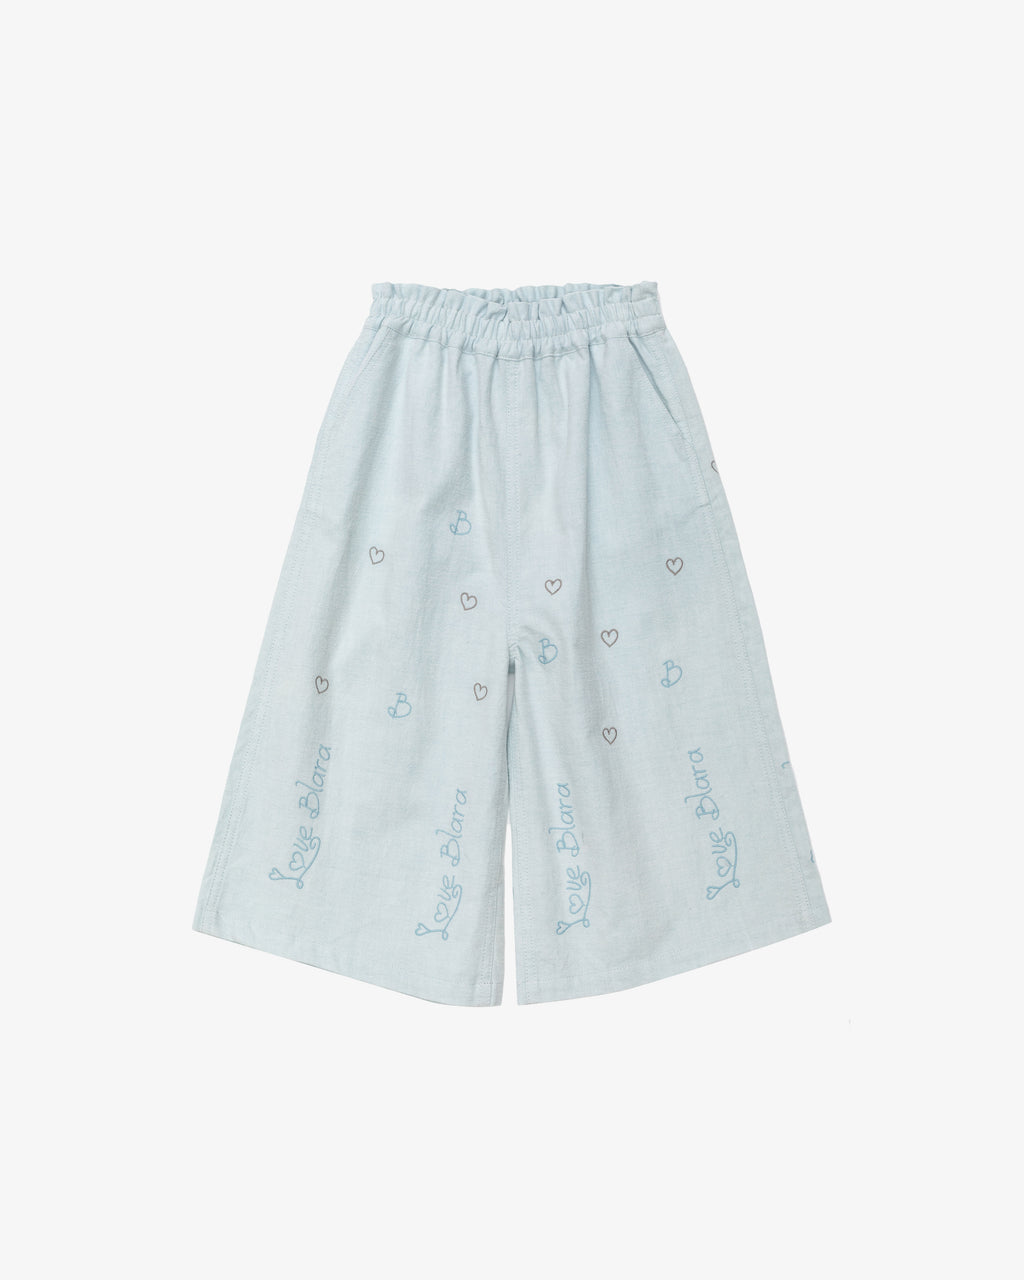 Blue with Embroidery - Love Blara Culotte | Blara Organic House | Sustainable Fashion for Girls